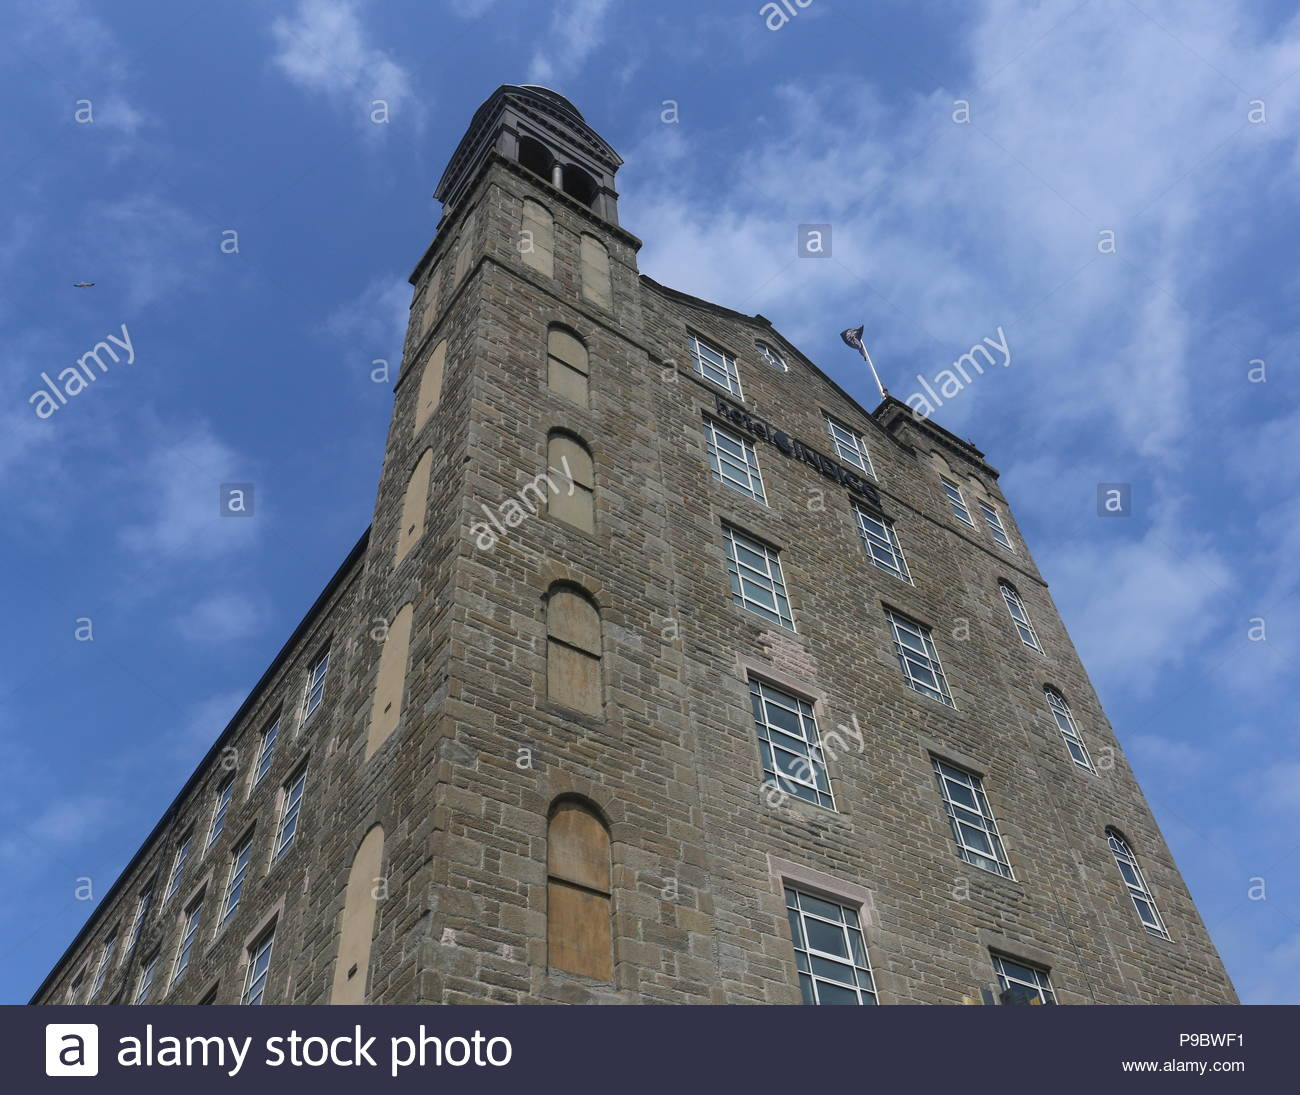 Exterior of Hotel Indigo with logo and flag Dundee Scotland  July 2018 Stock Photo